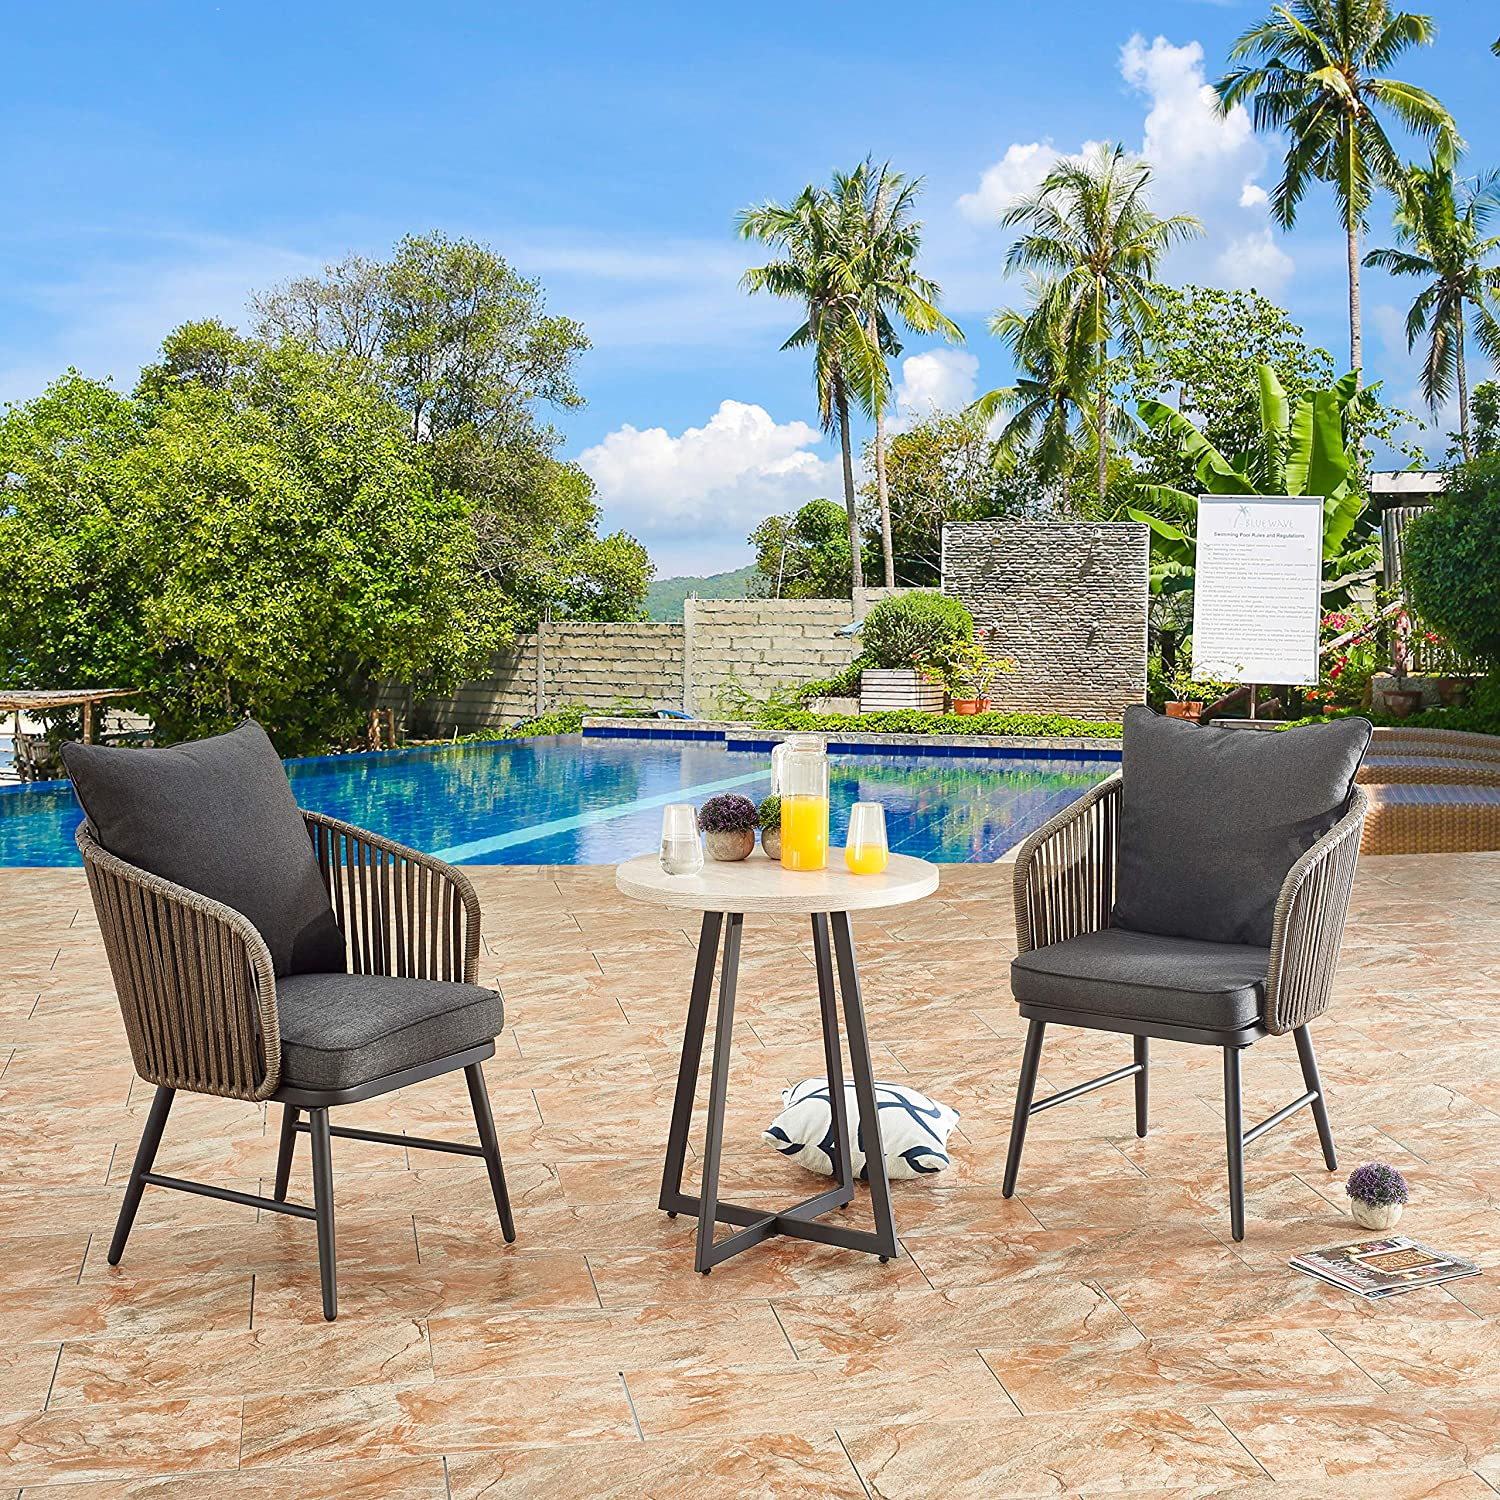 LOKATSE HOME Outdoor 3 Piece Bistro Set Patio Wicker Modern Balcony Furniture Include 2 Chairs with Seat and Back Cushions and 1 Coffee, Beige Table Top